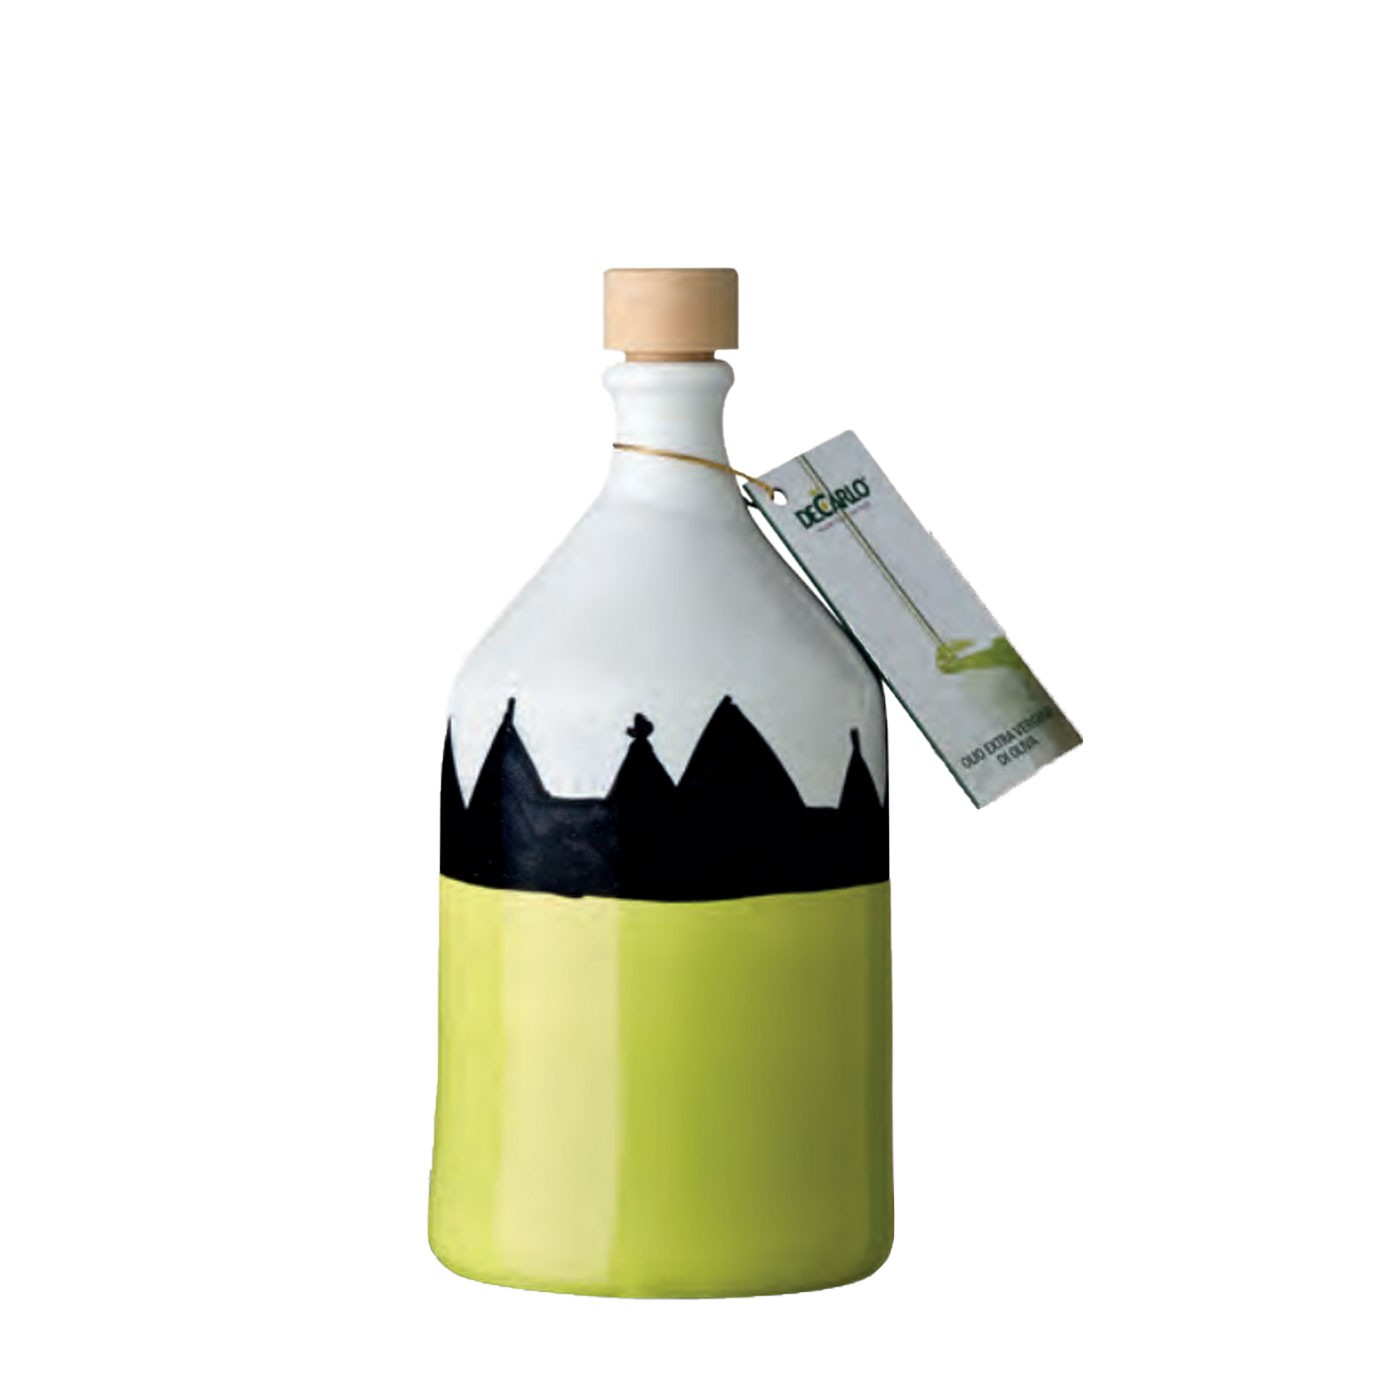 Extra Virgin Olive Oil in Hand-painted Ceramic Bottle 8.5 oz